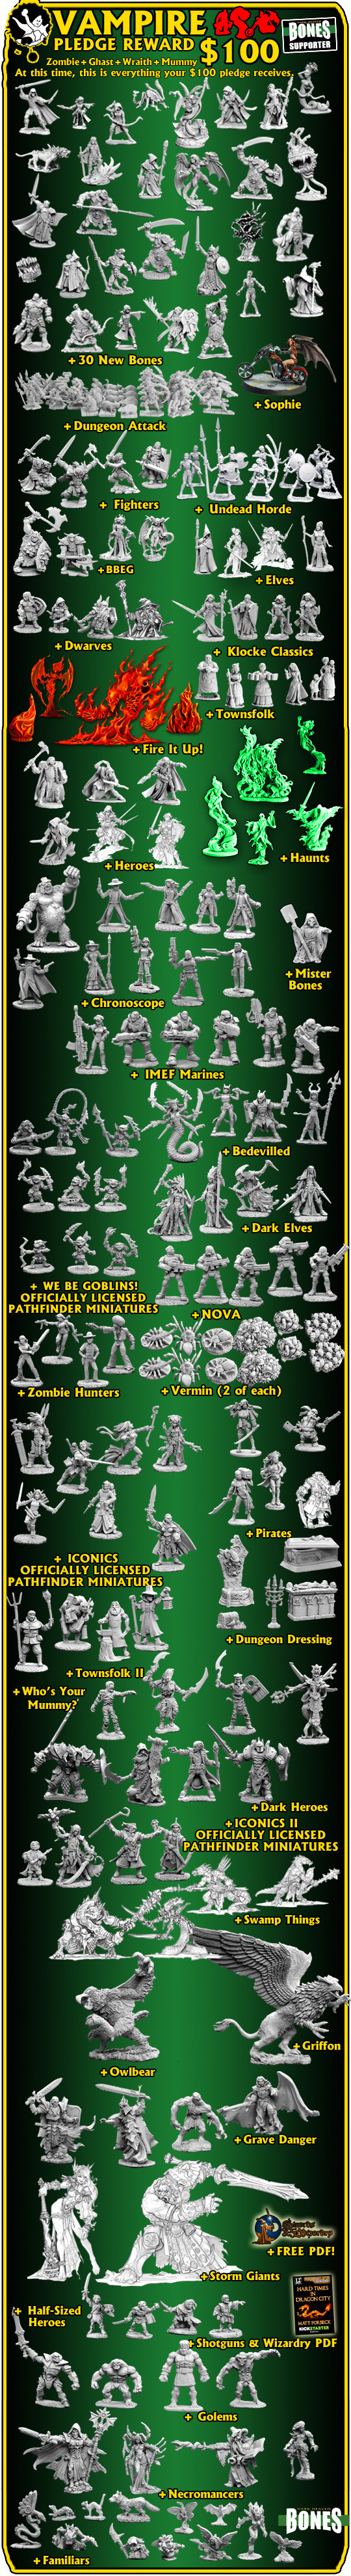 Reaper Miniatures Bones: An Evolution Of Gaming Miniatures